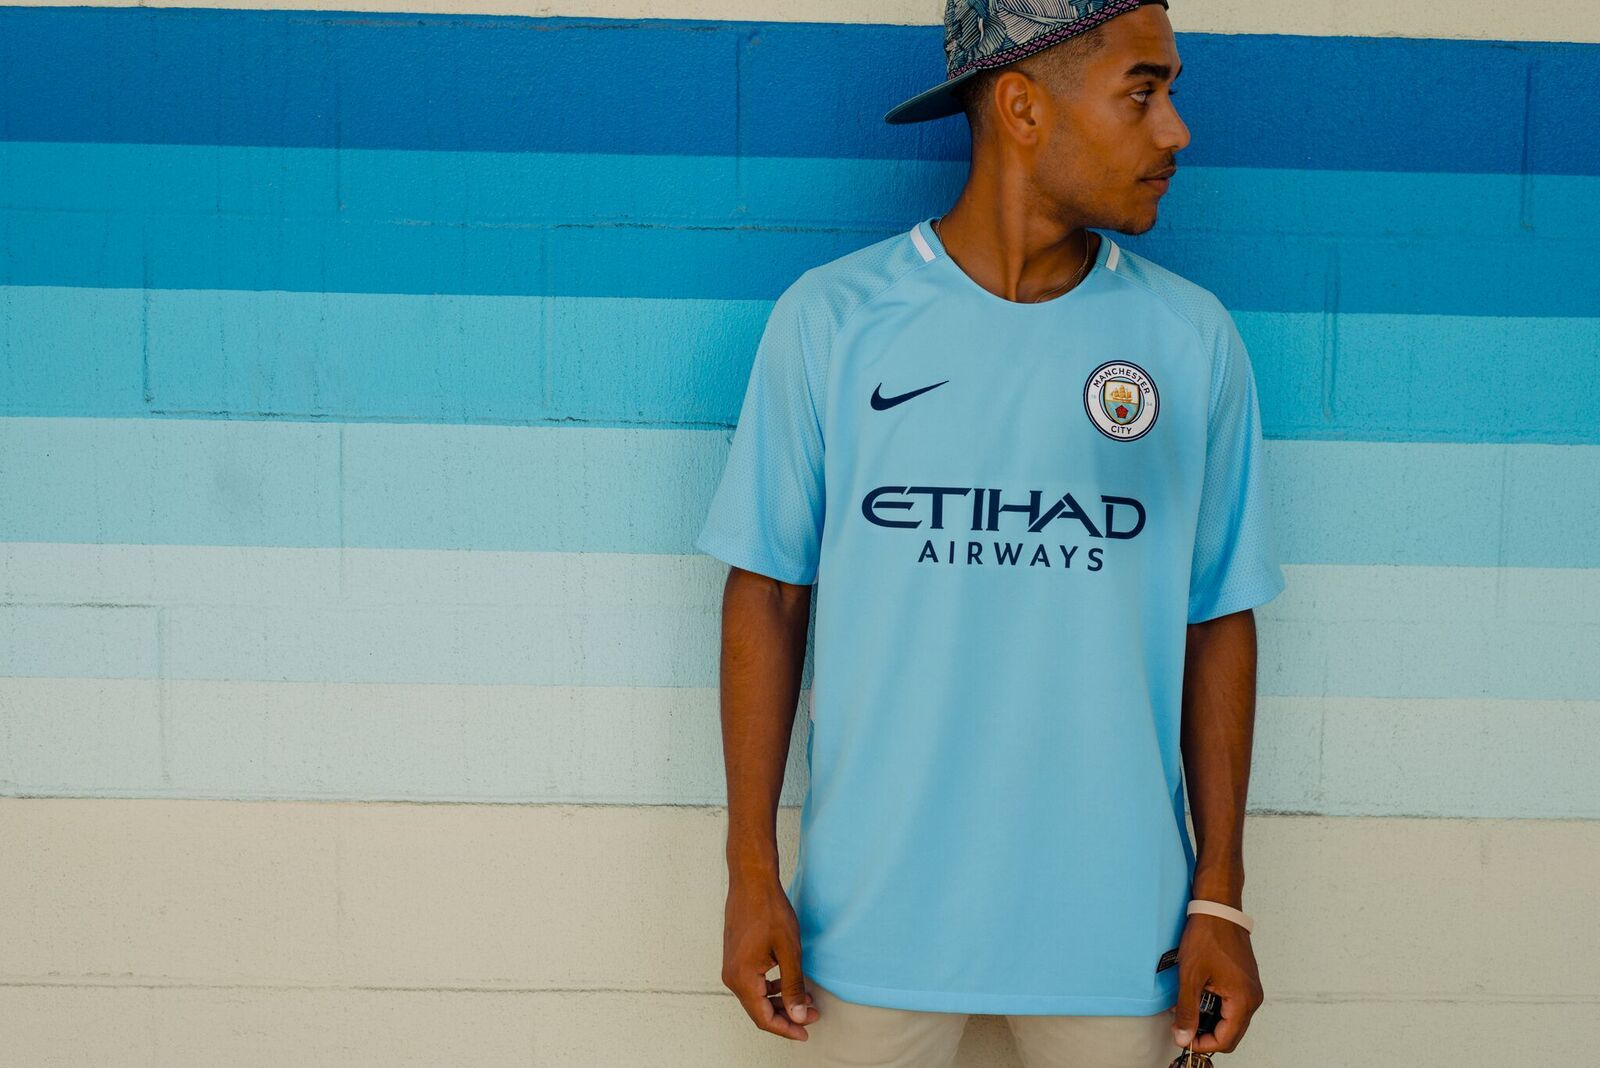 Manchester City gear at WorldSoccerShop.com | World soccer shop, Manchester  city, Soccer shop